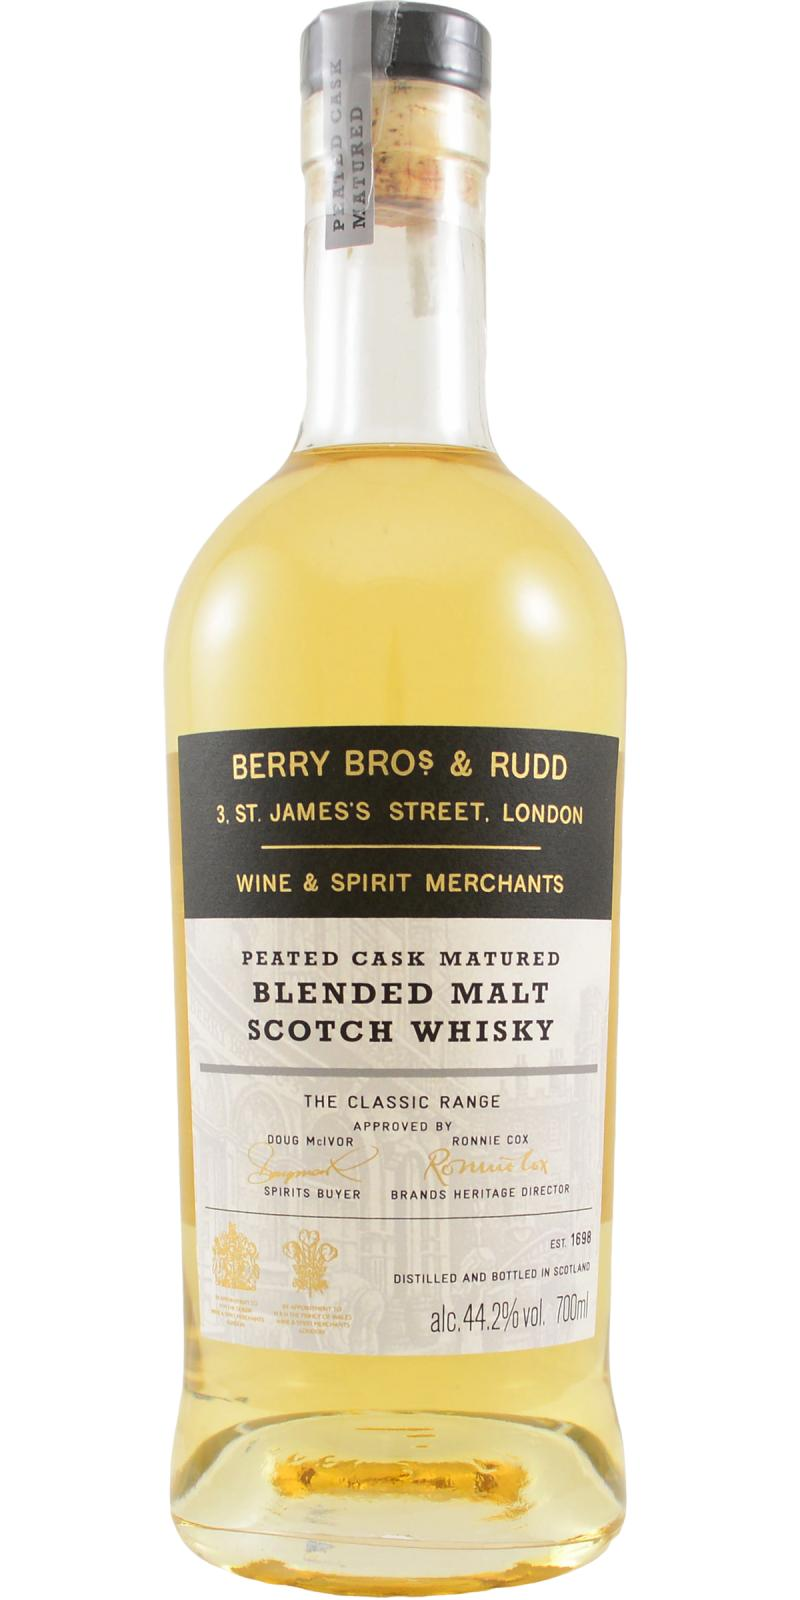 Blended Malt Scotch Whisky The Classic Range BR Peated Cask